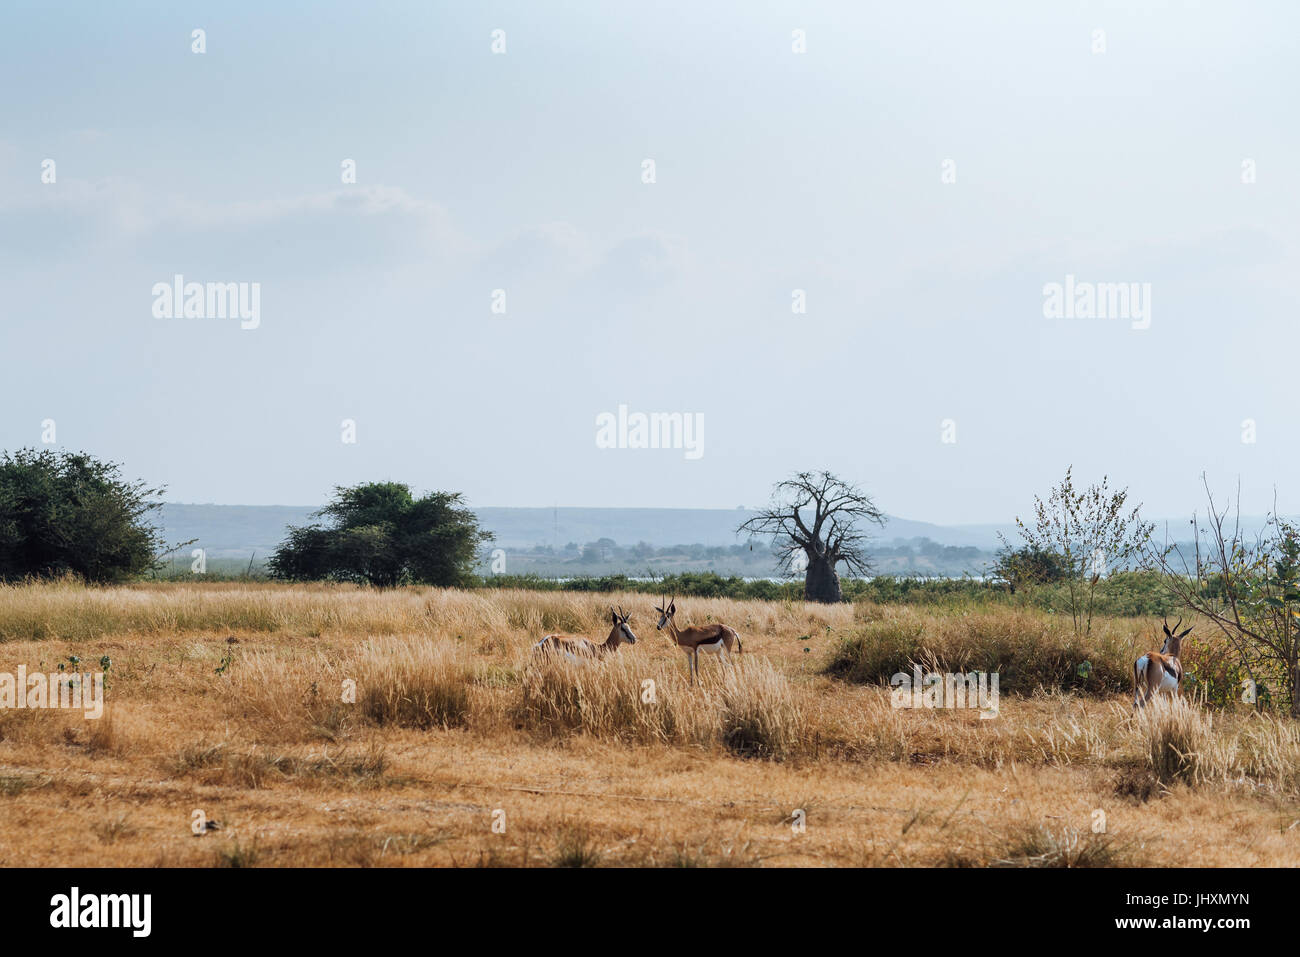 Antelope graze at a resort in the Bengo Province of Angola. - Stock Image